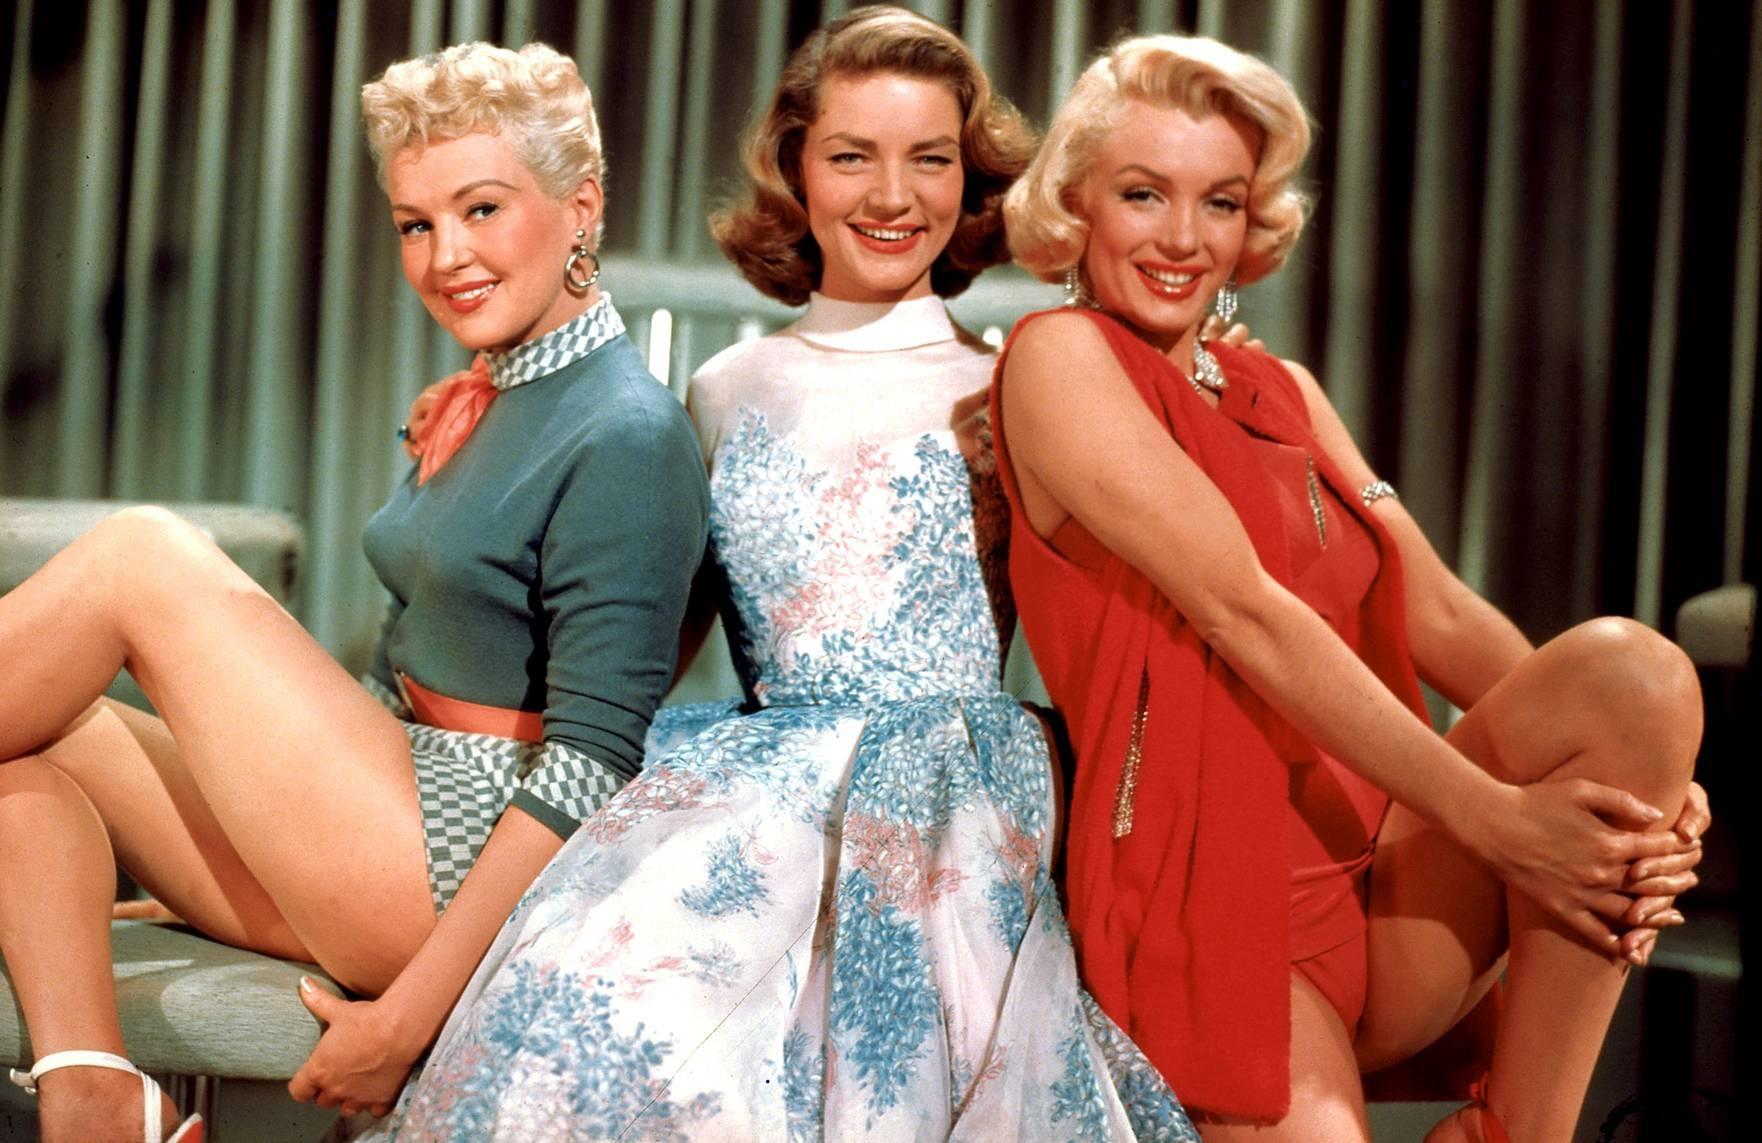 lauren_bacall_marilyn_monroe_betty_grable_how_to_marry_millionaire_desktop_1762x1143_wallpaper-317976